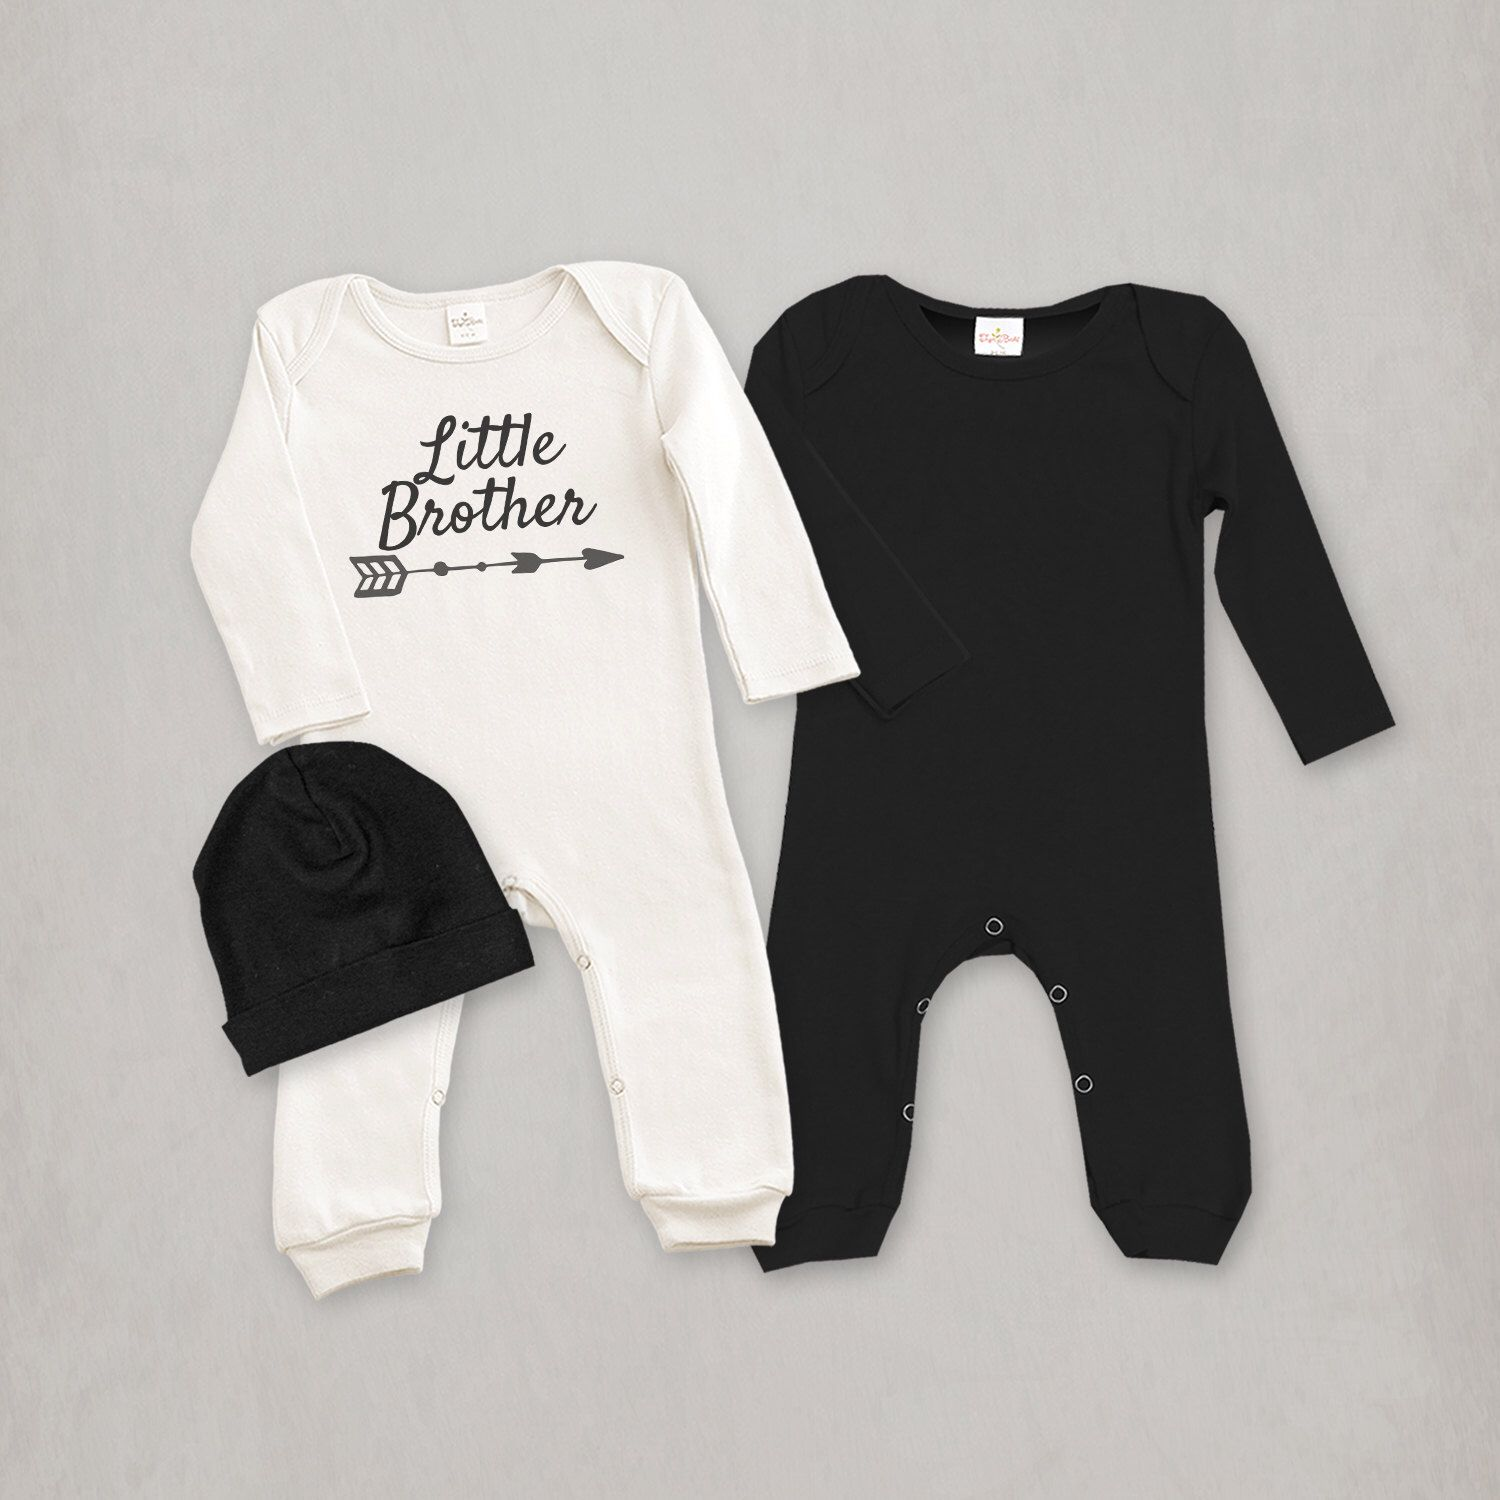 Newborn Boy Take Home Outfit Little Brother Romper with Optional